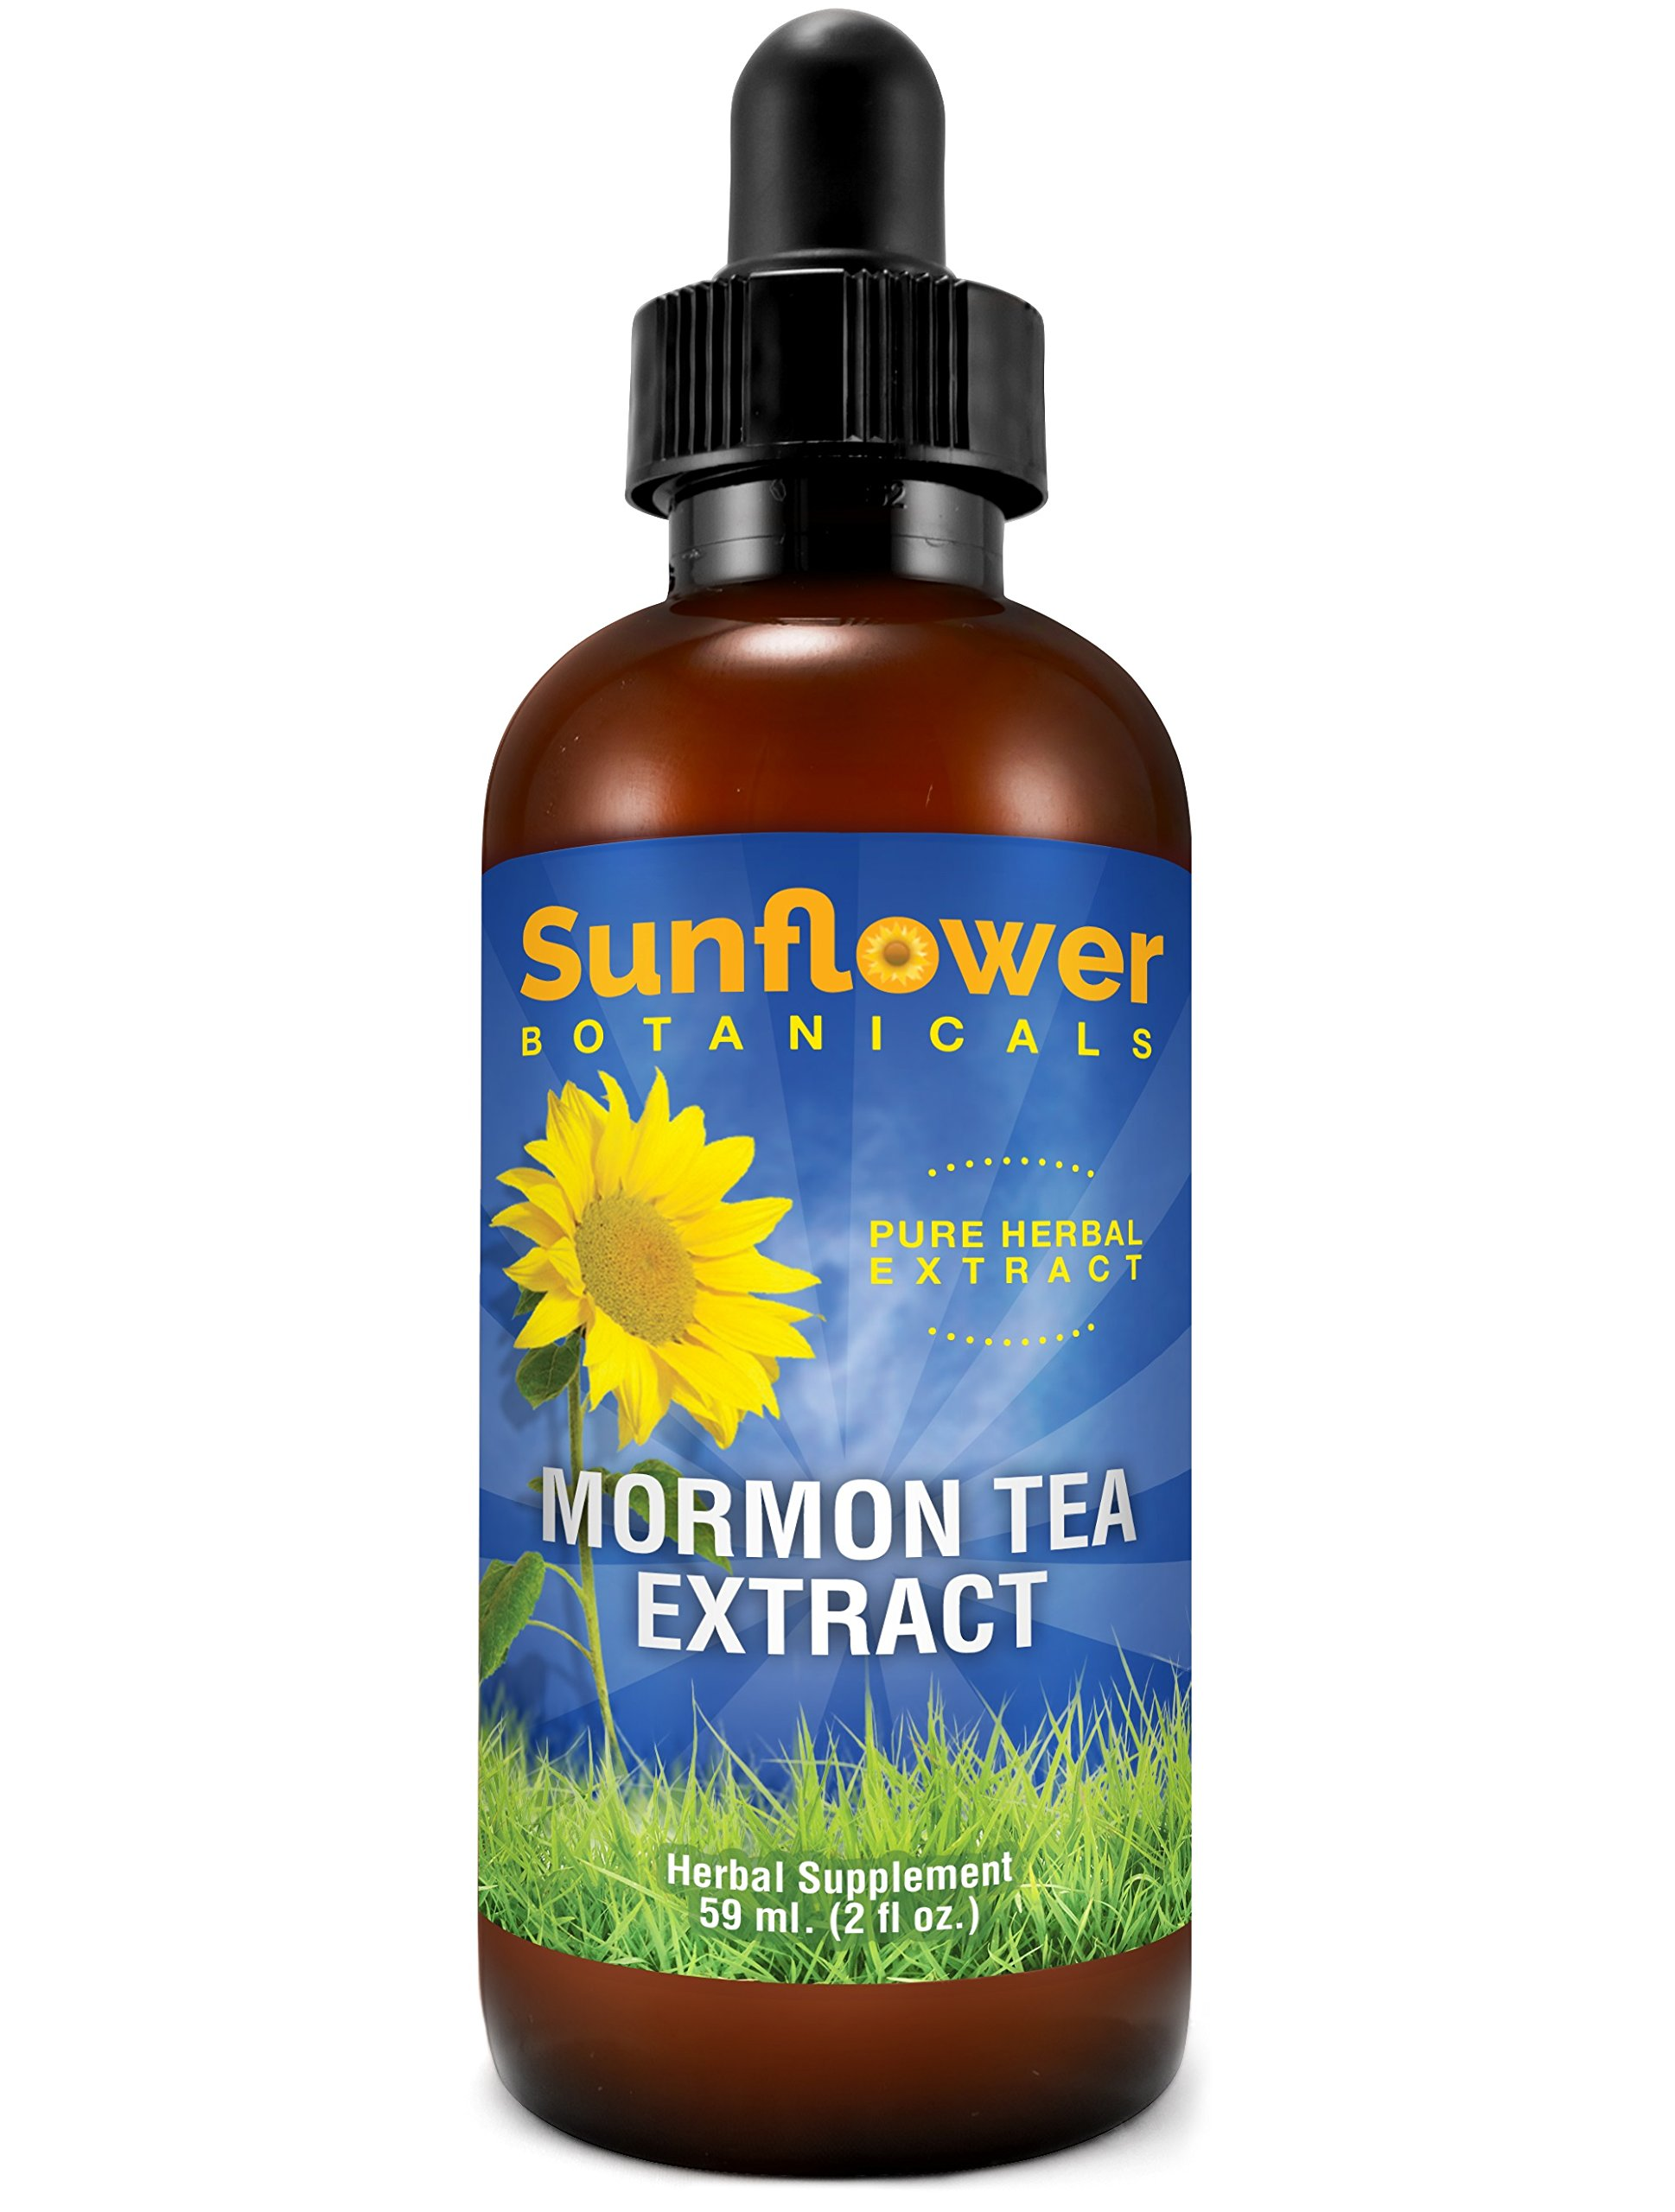 Sunflower Botanicals Mormon (Brigham) Tea Extract, 2 oz. Glass Dropper-Top Bottle, Vegan, Non-GMO and All-Natural, Optimally Concentrated